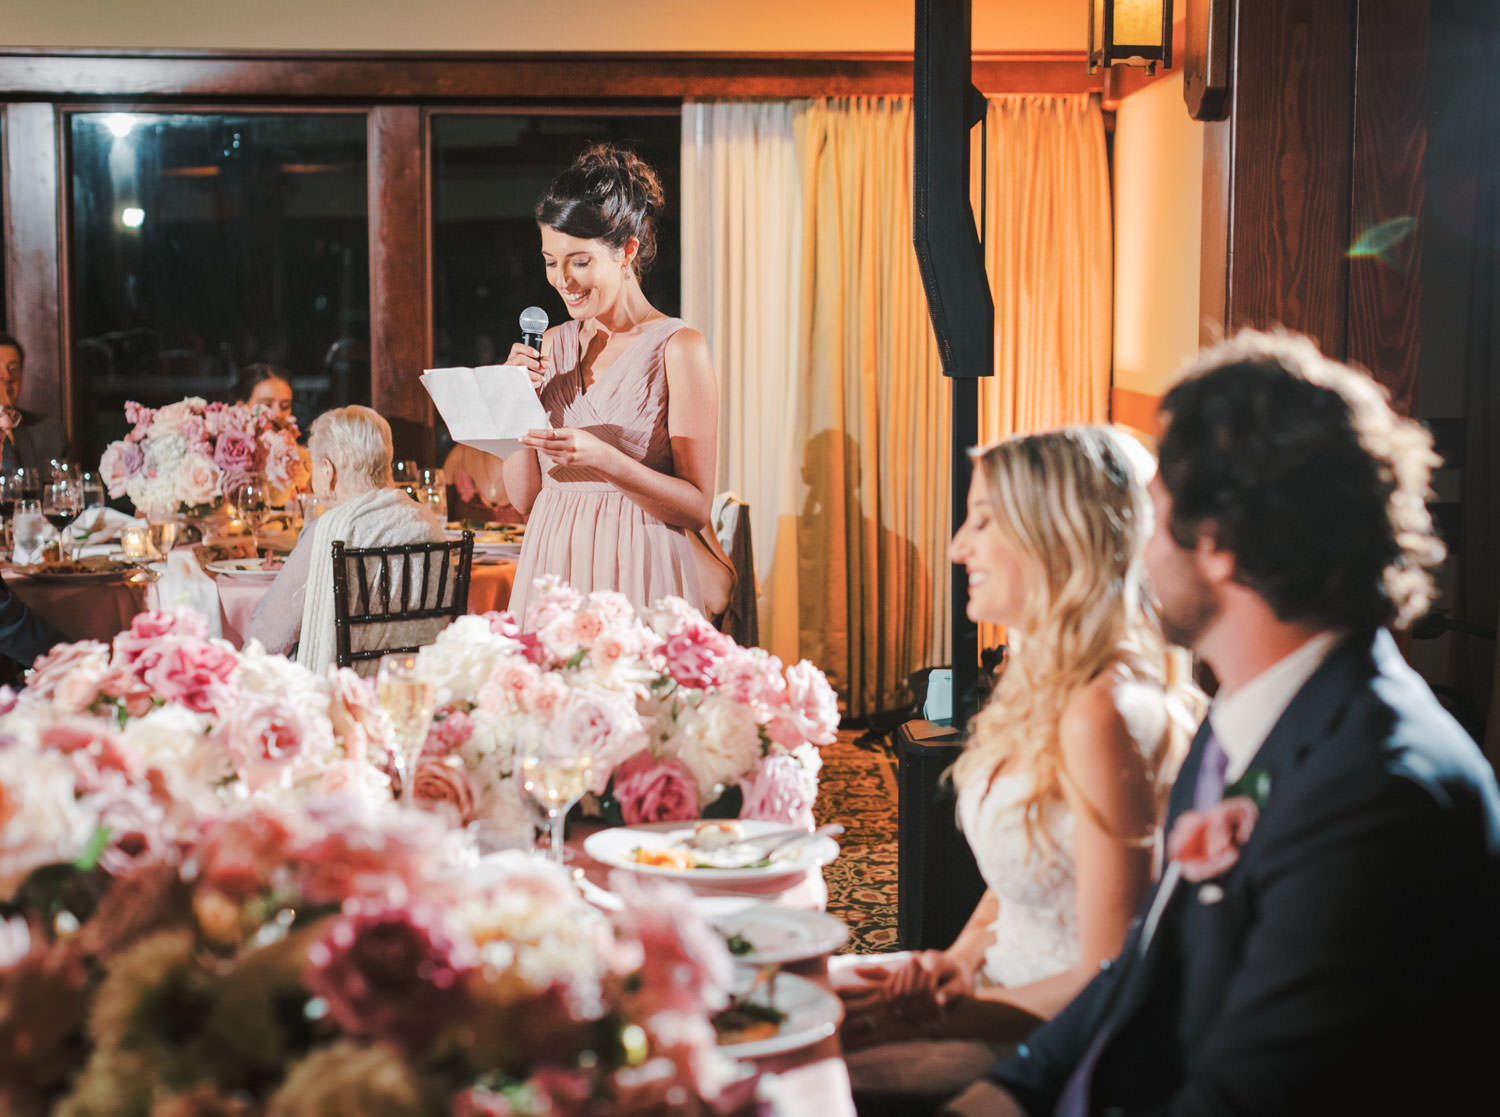 Toast for the bride and groom, The Lodge at Torrey Pines wedding, photography by Cavin Elizabeth Photography